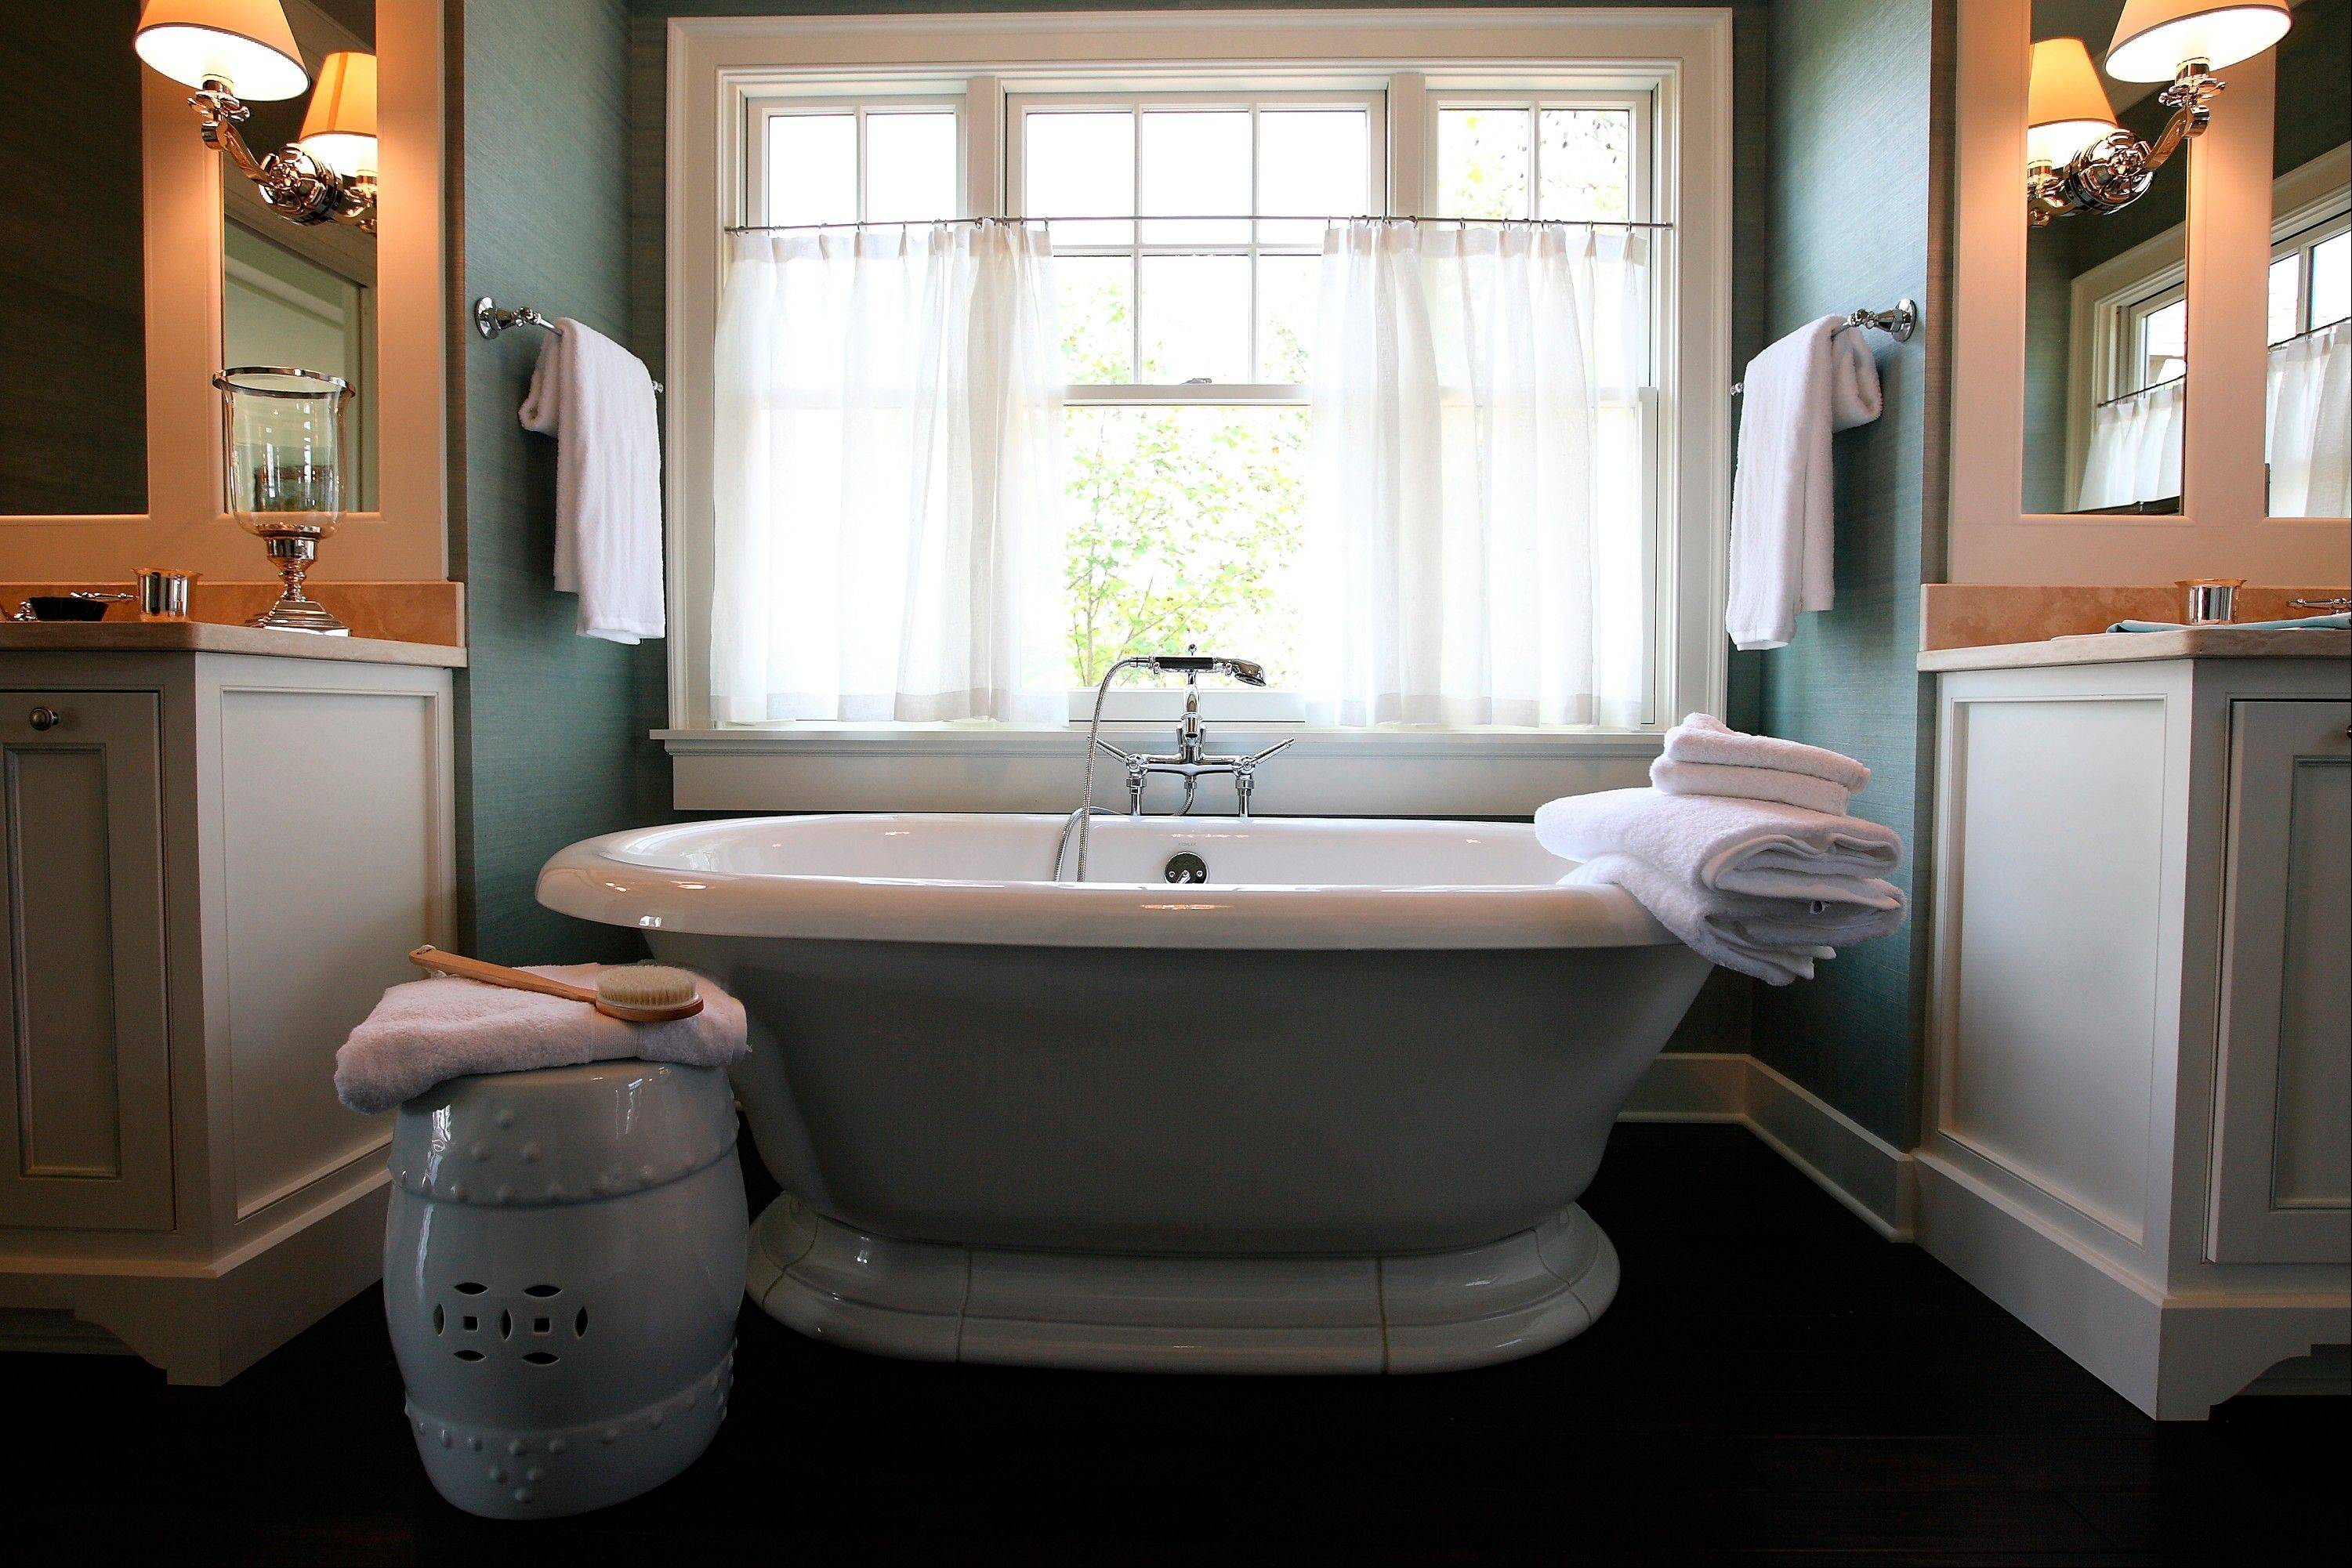 The sheer treatment adds to the airy feeling in this bathroom, designed by Mallory Mathison Inc.